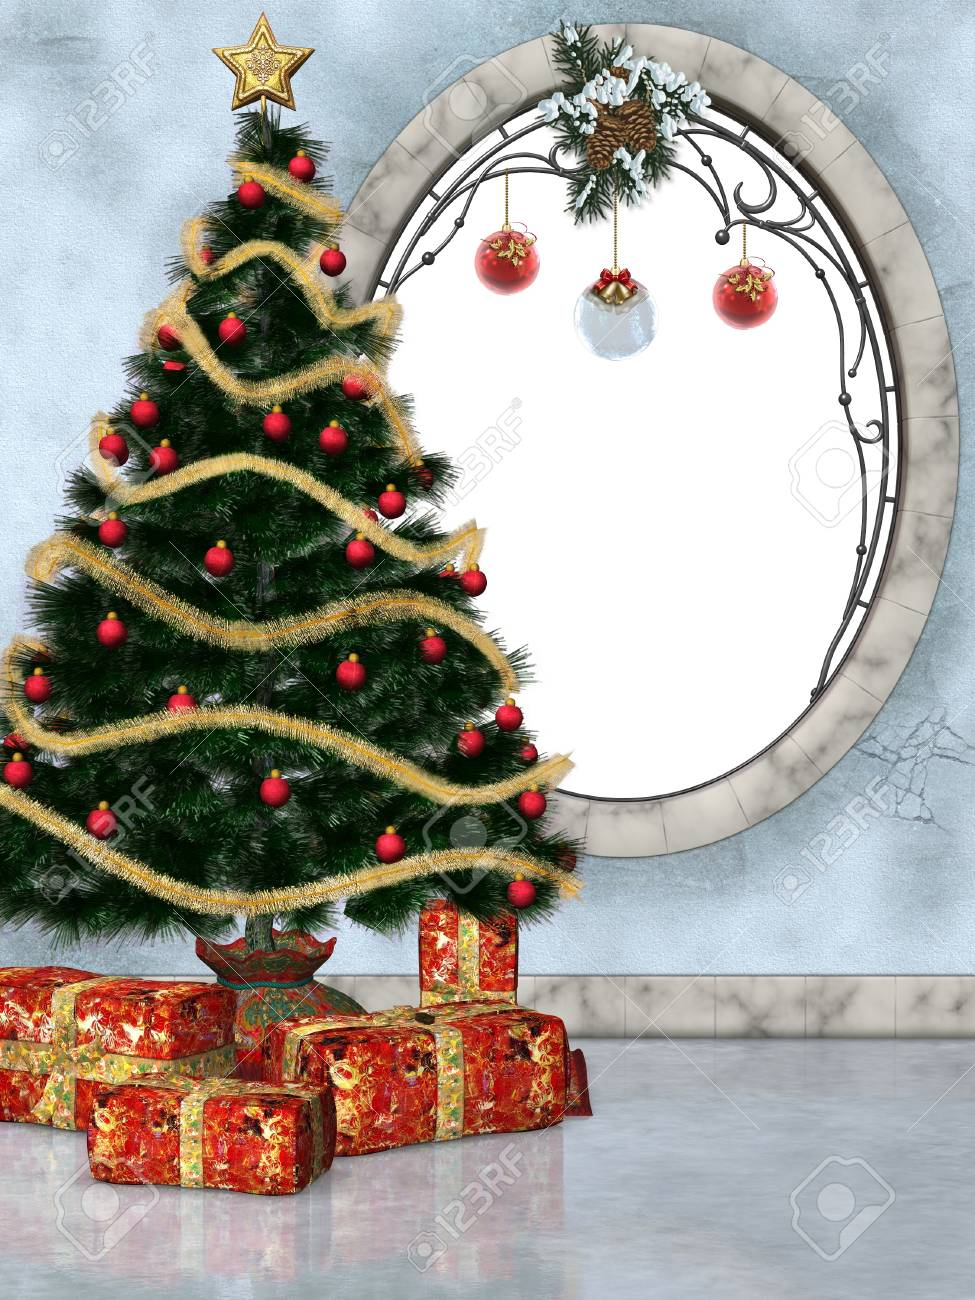 festively decorated room with Christmas tree Stock Photo - 9132548